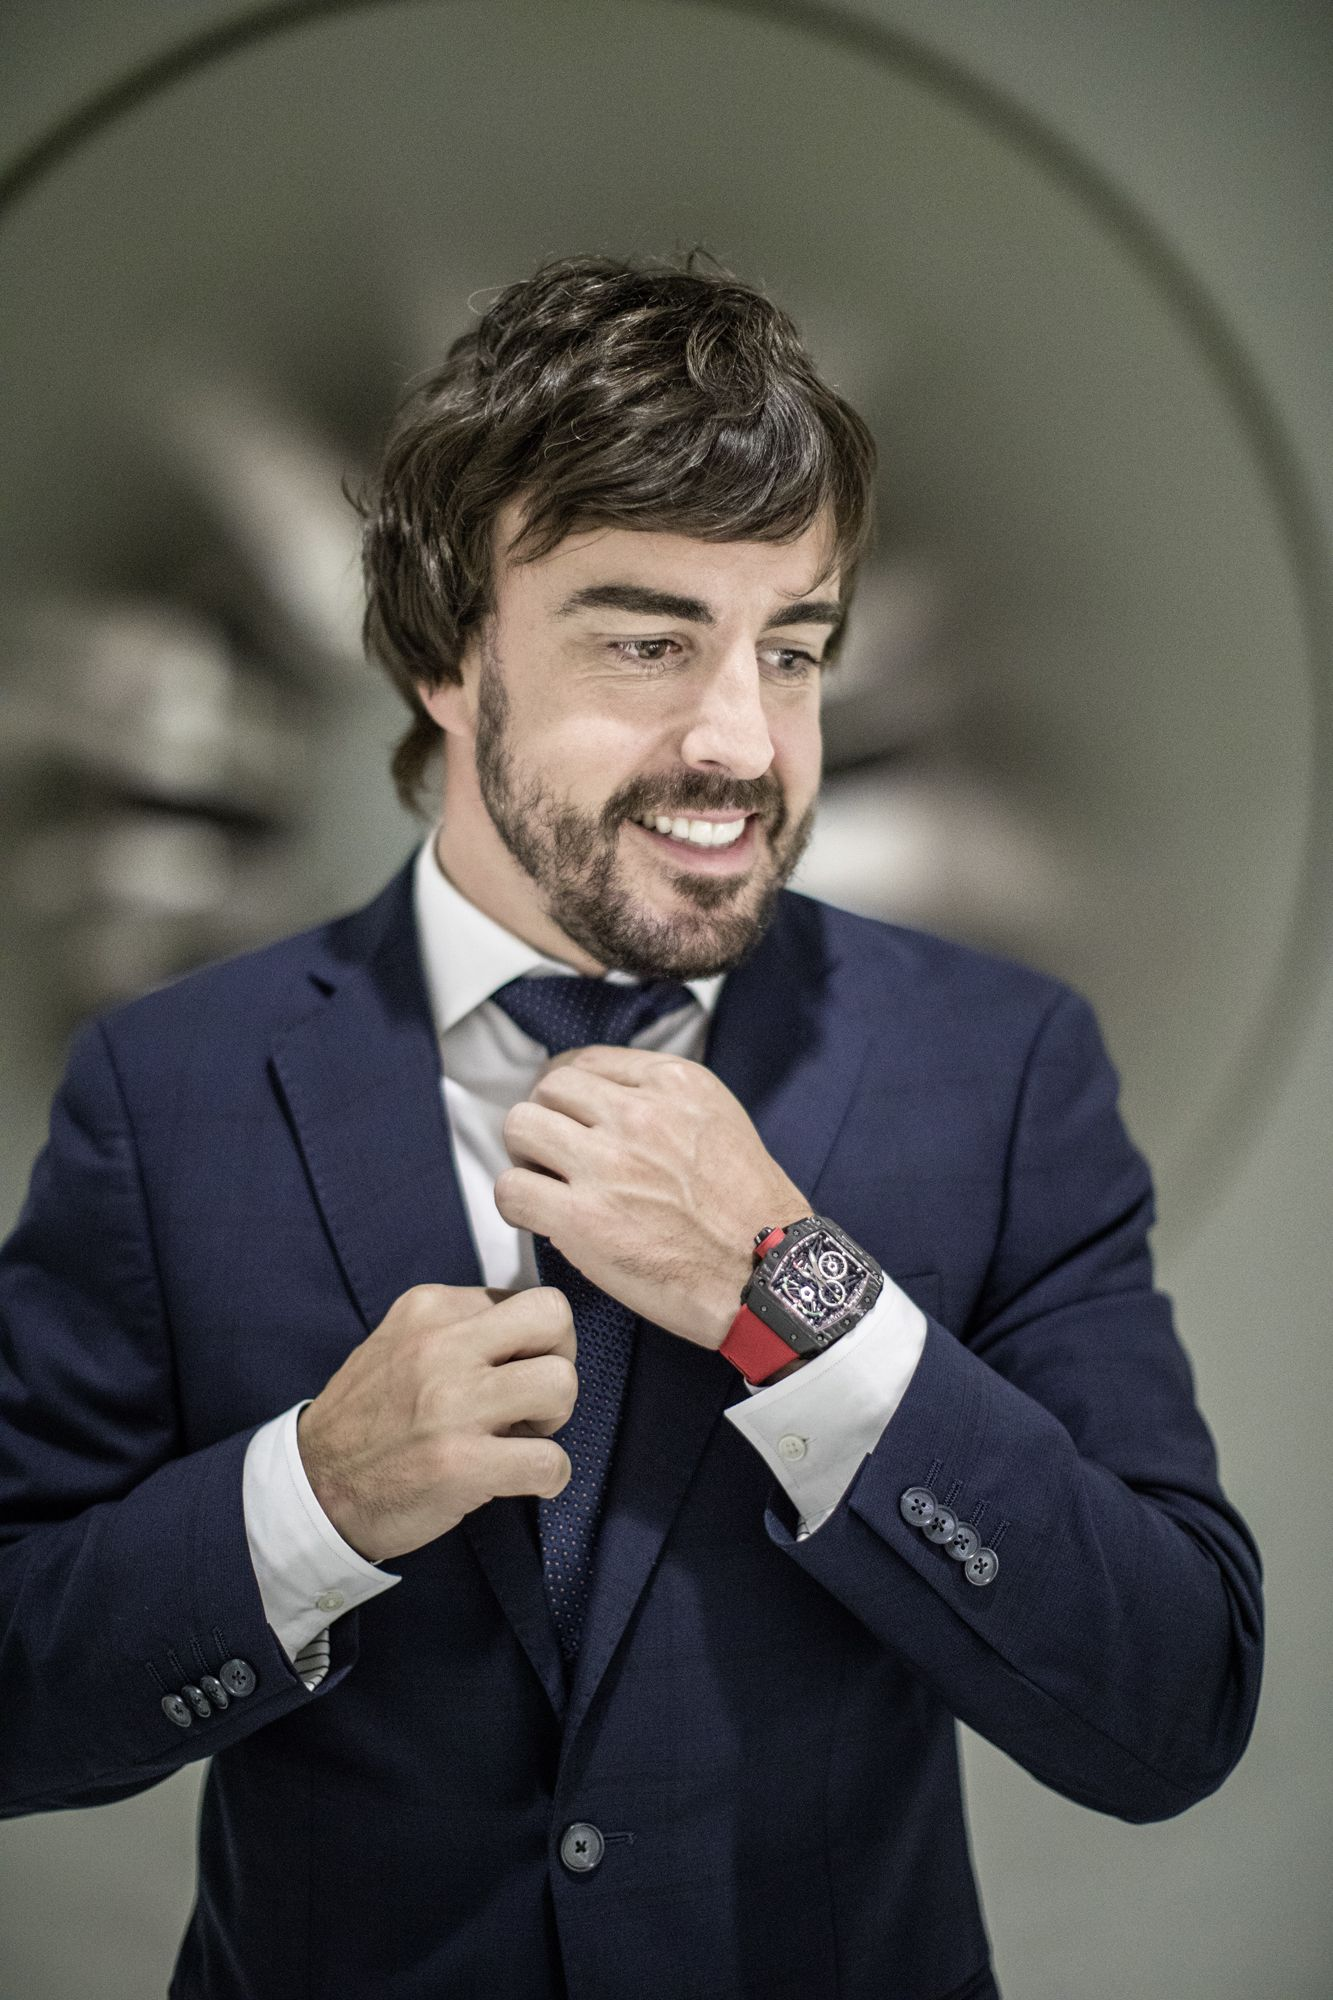 9887efdf87a Fernando Alonso models the incredible RM 50-03 McLaren F1 timepiece for  Richard Mille.